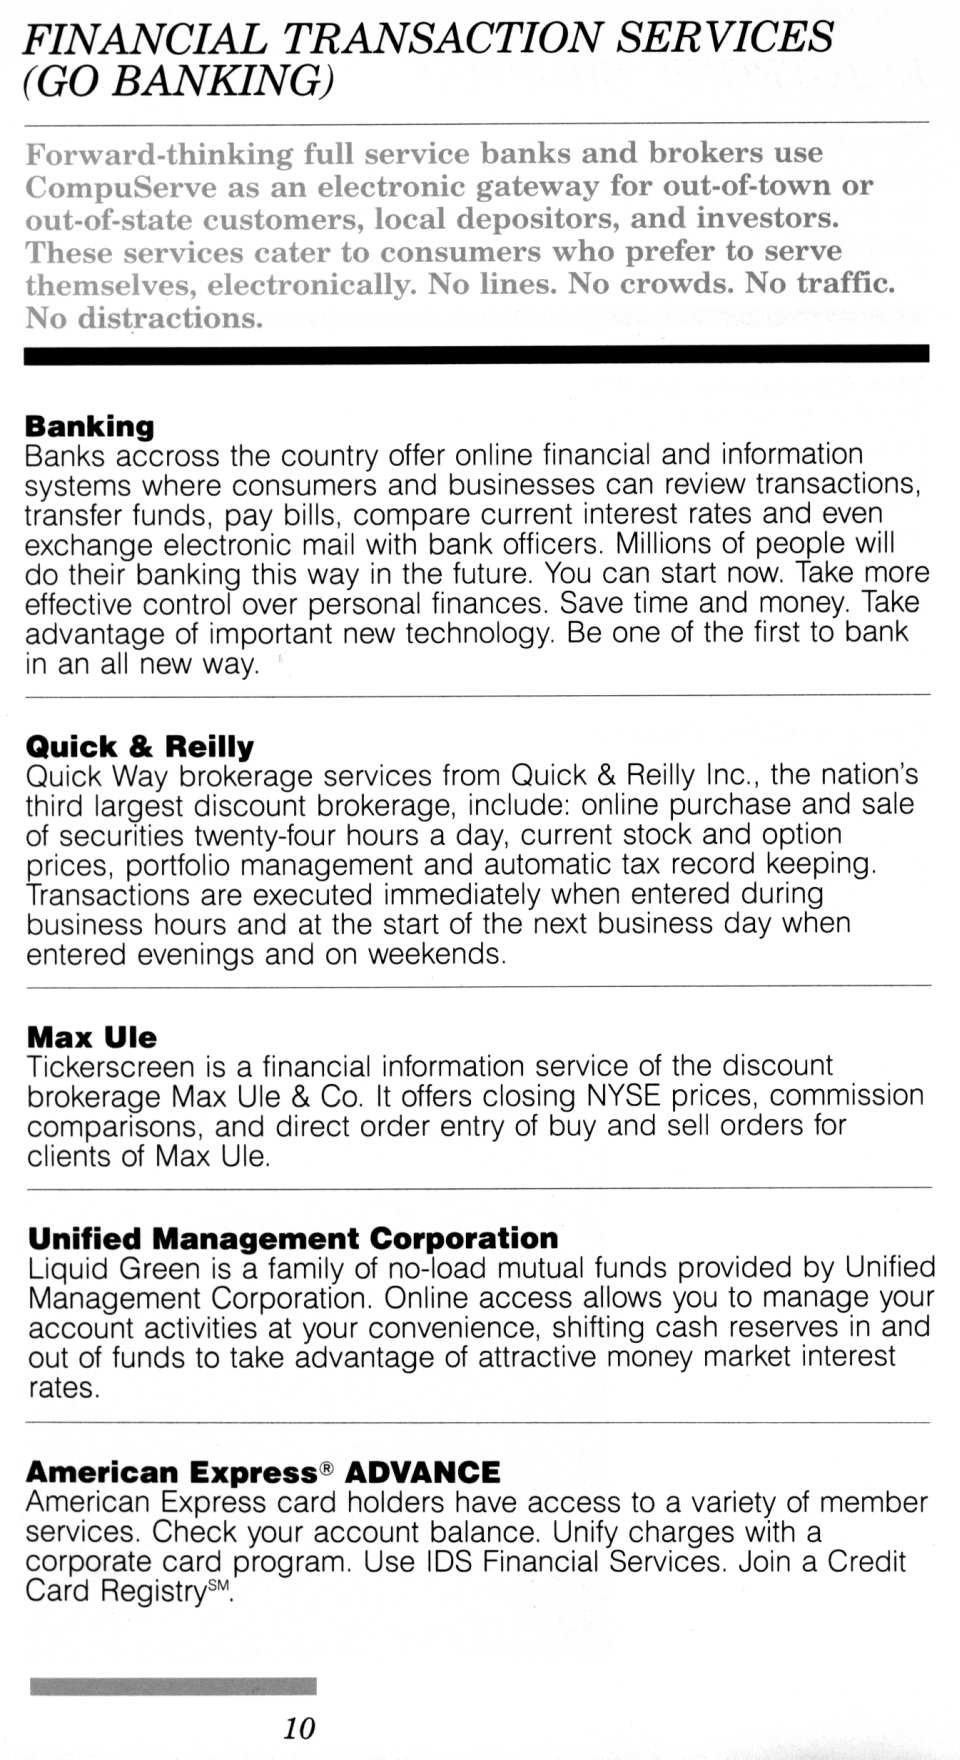 [CompuServe IntroPak page 10/44  Financial Transaction Services (GO BANKING)]